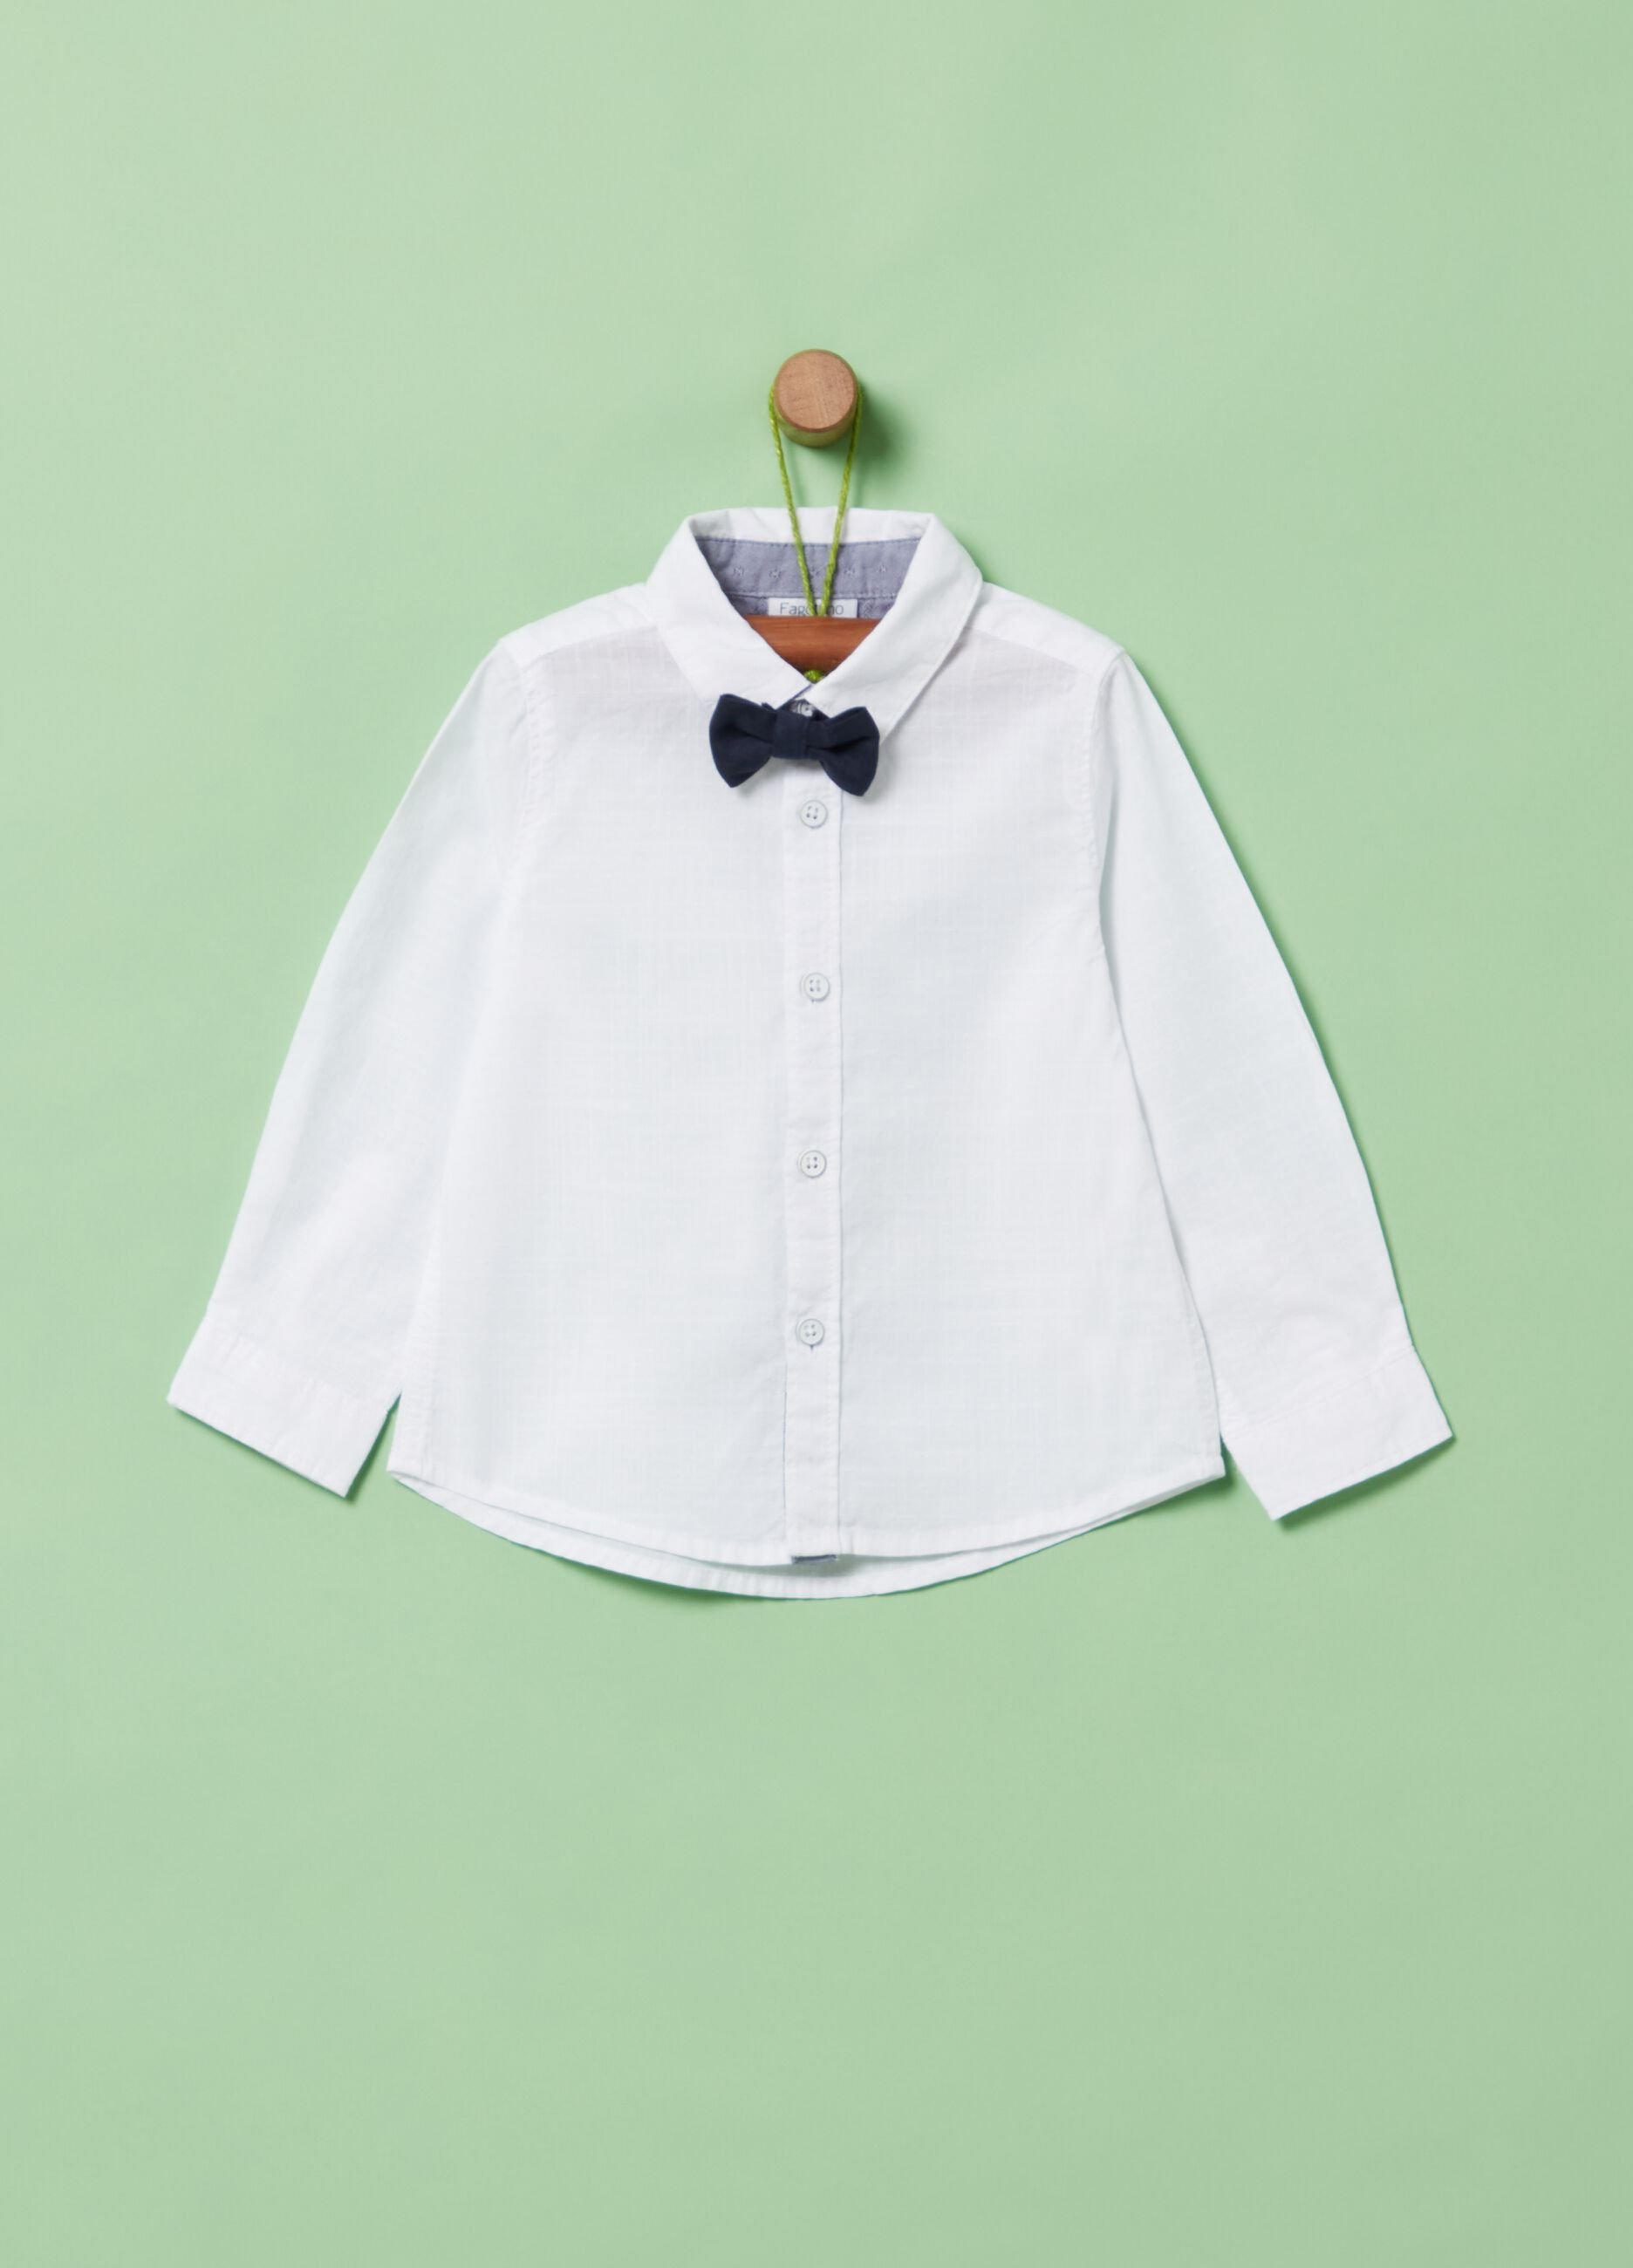 Baby Boy White Blue Smart Shirt Bodysuit Long Sleeve Bowtie Tie 3 6 9 12 18 24 m